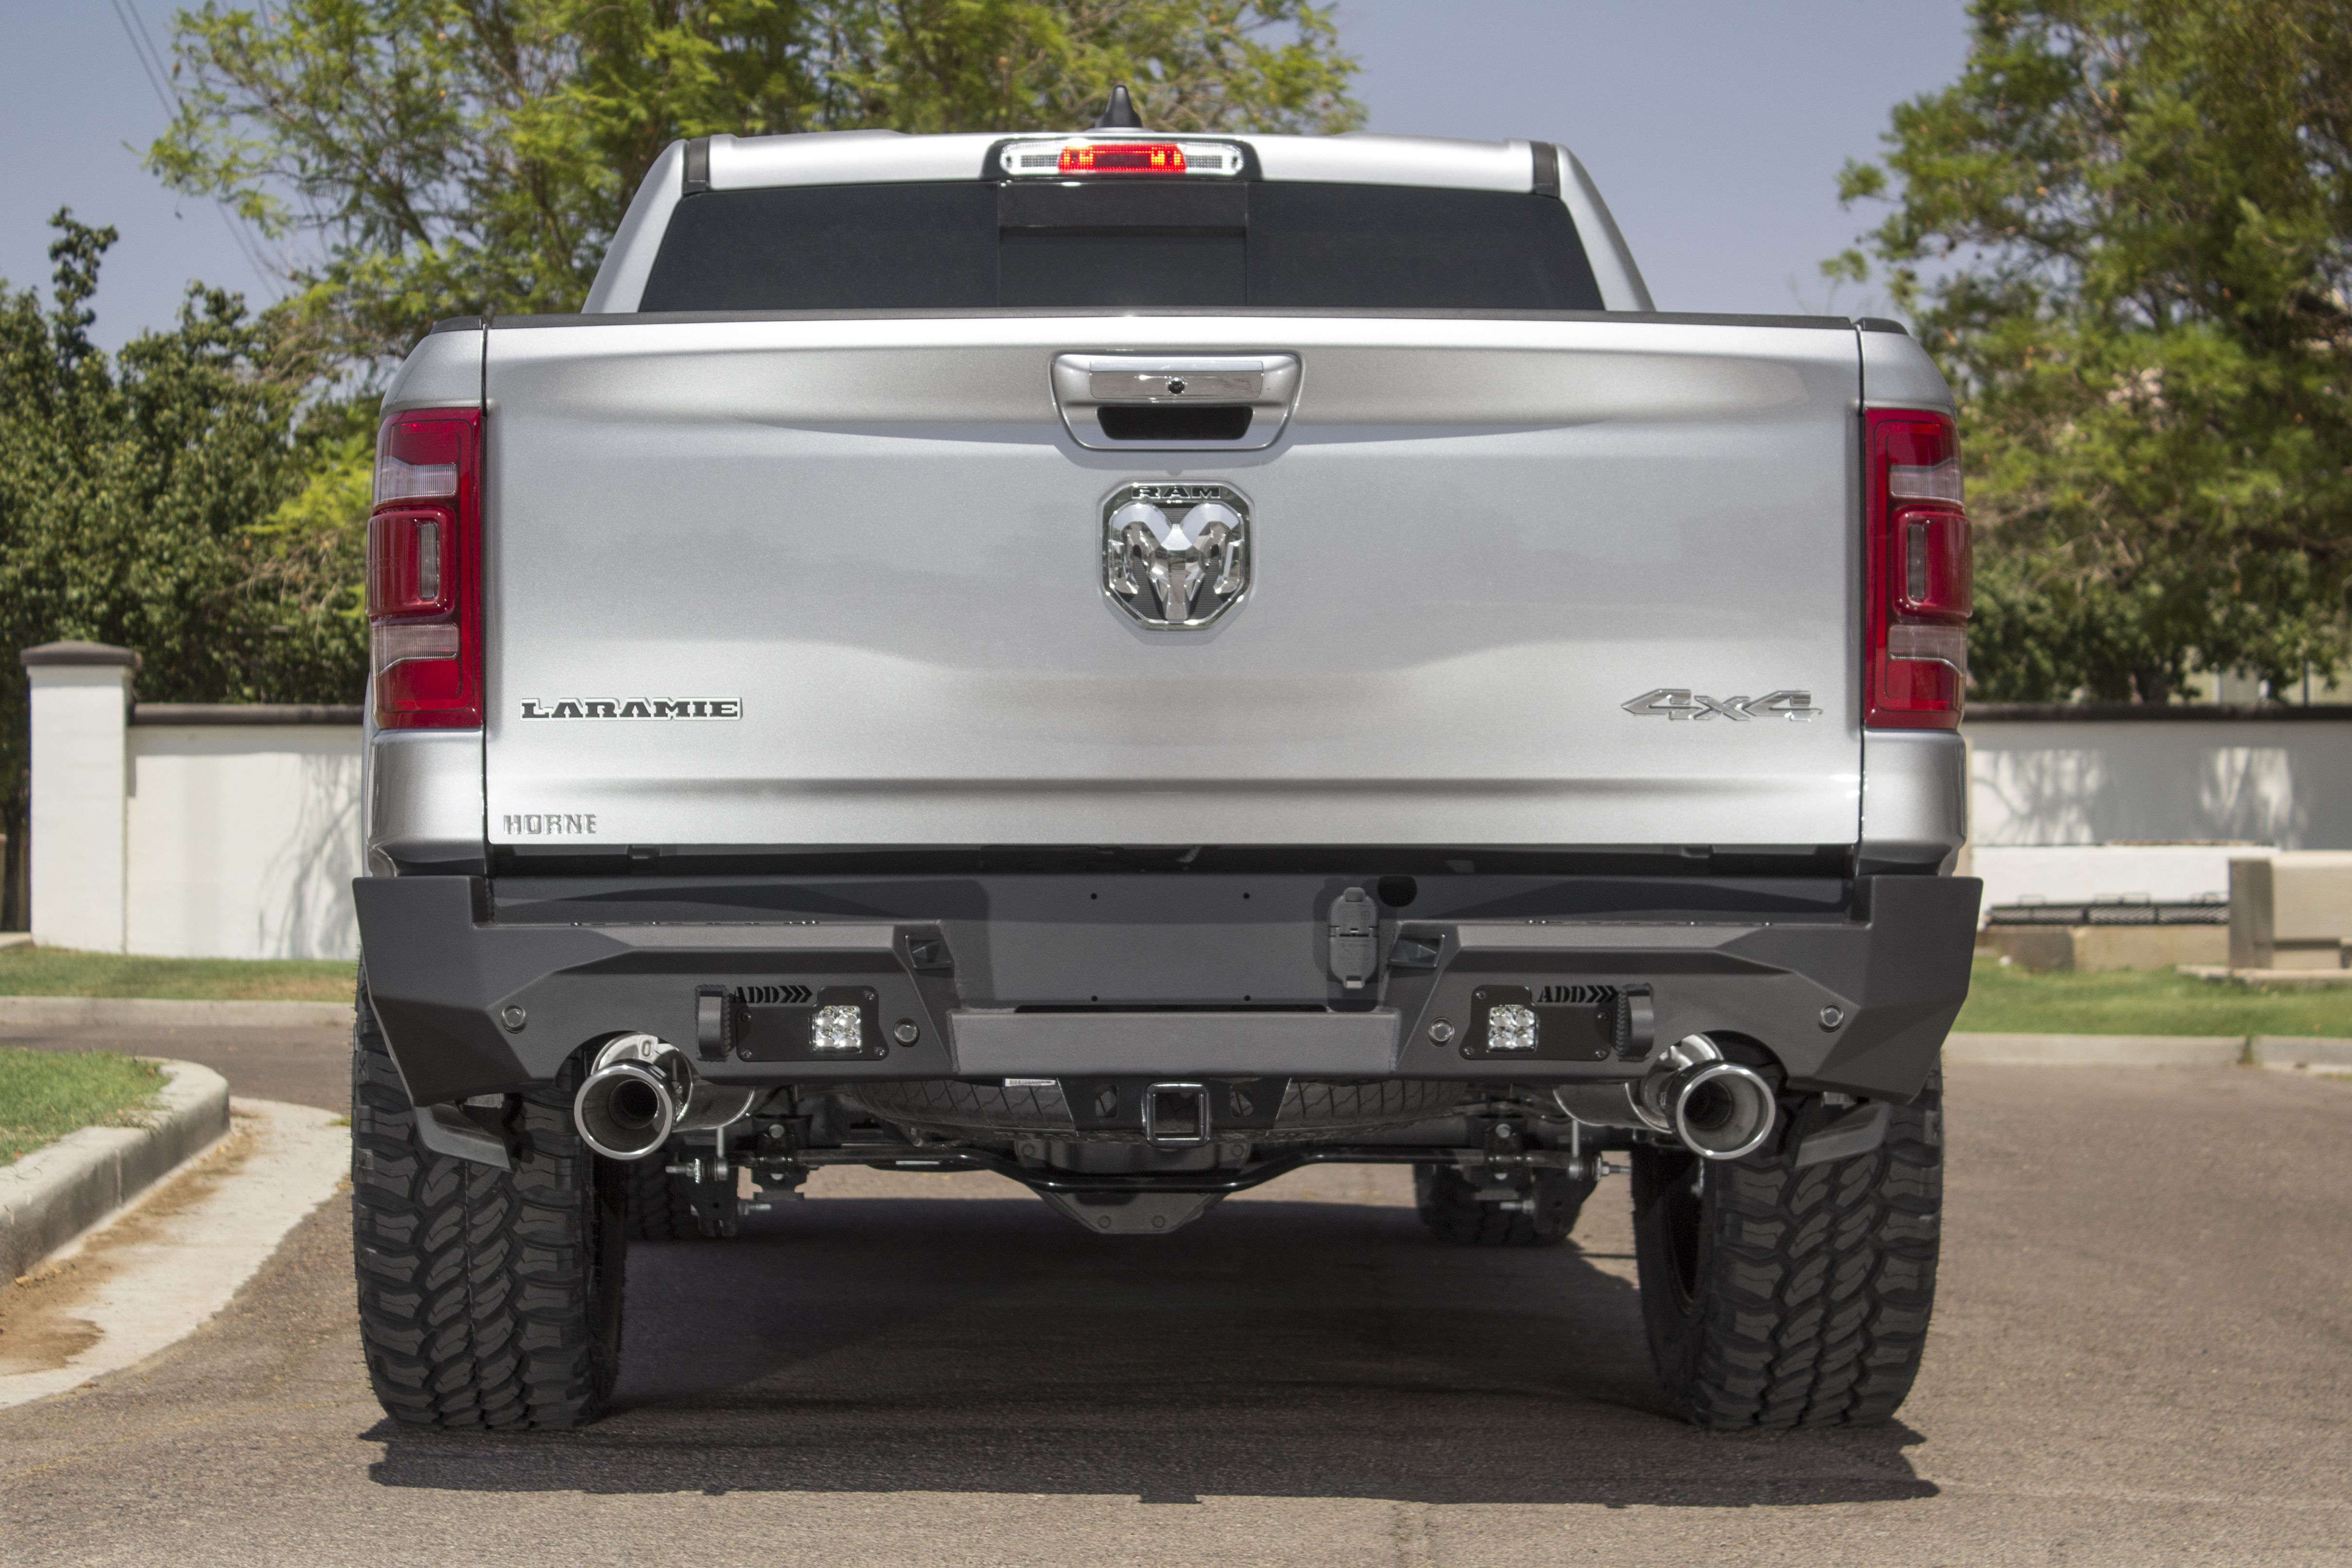 2019 Current Ram 1500 Stealth Fighter Rear Bumper Sleek Design Fits Tight To The Rear Of The Truck Styling Compliments Factory Body L Ram 1500 Ram Dodge Ram